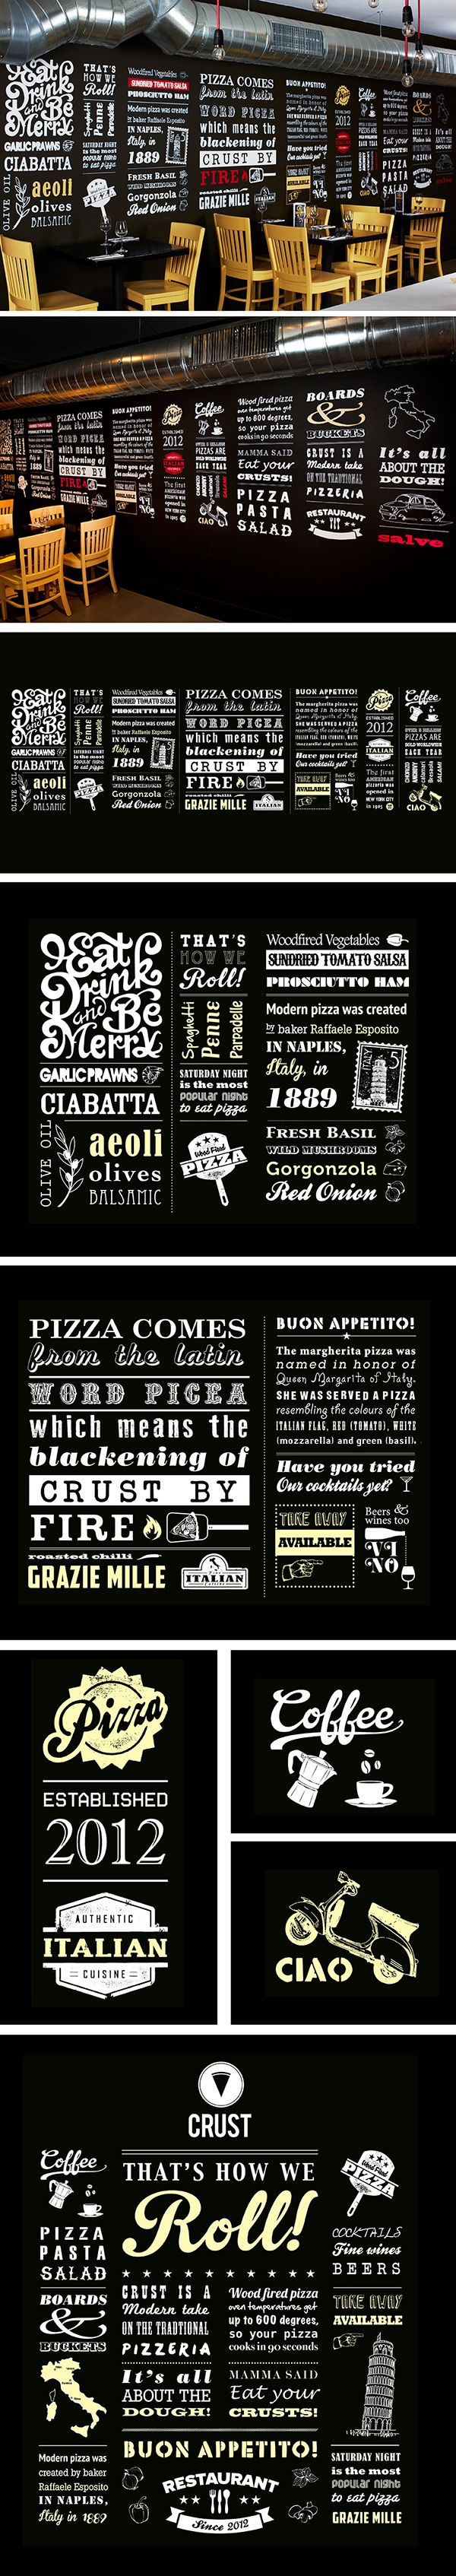 Typographic Wall for pizza resturant I Love Crust